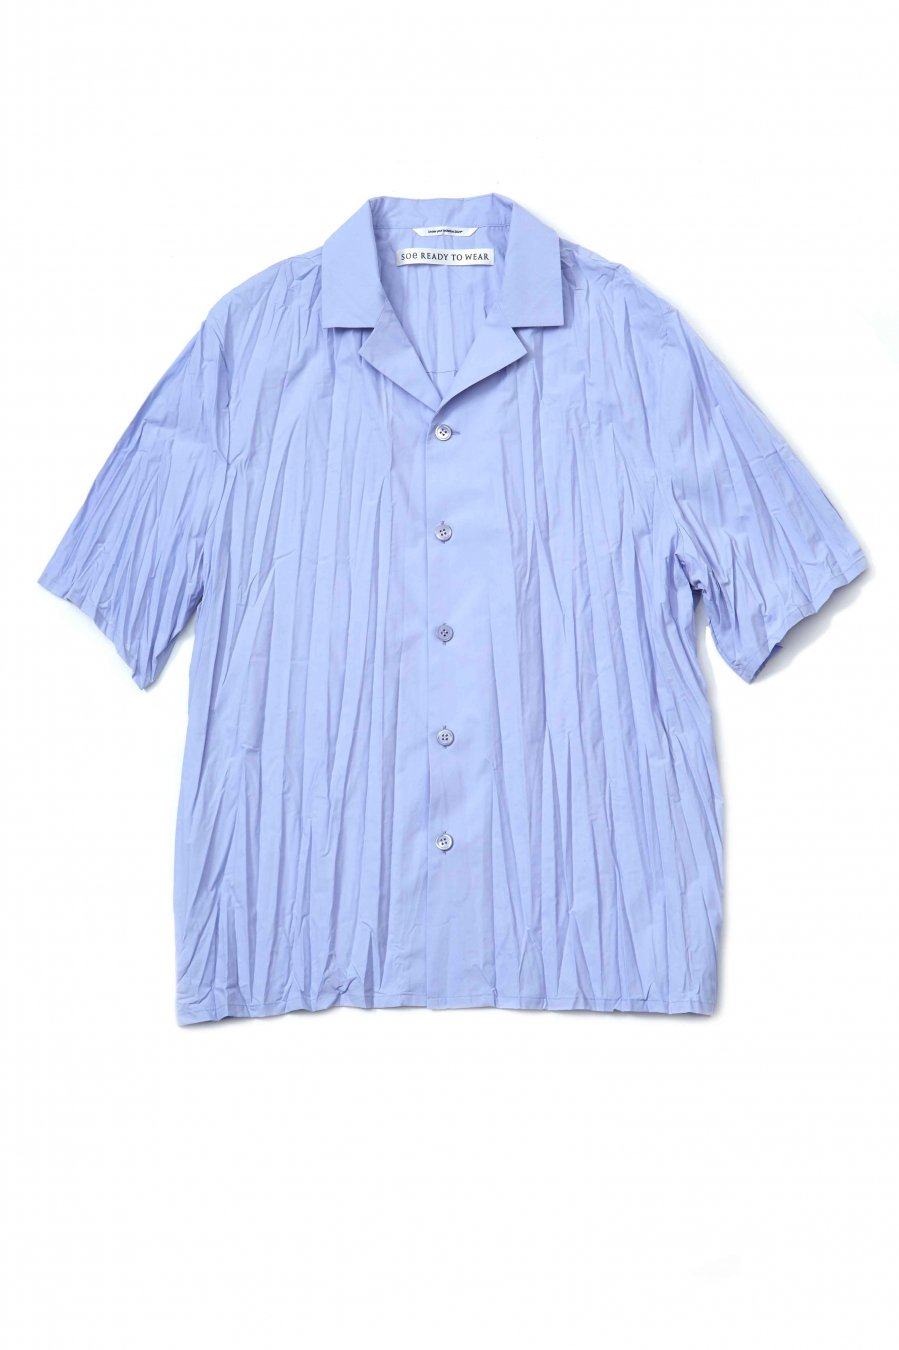 soe  Pleated H/S Shirt(SAX)<img class='new_mark_img2' src='https://img.shop-pro.jp/img/new/icons15.gif' style='border:none;display:inline;margin:0px;padding:0px;width:auto;' />